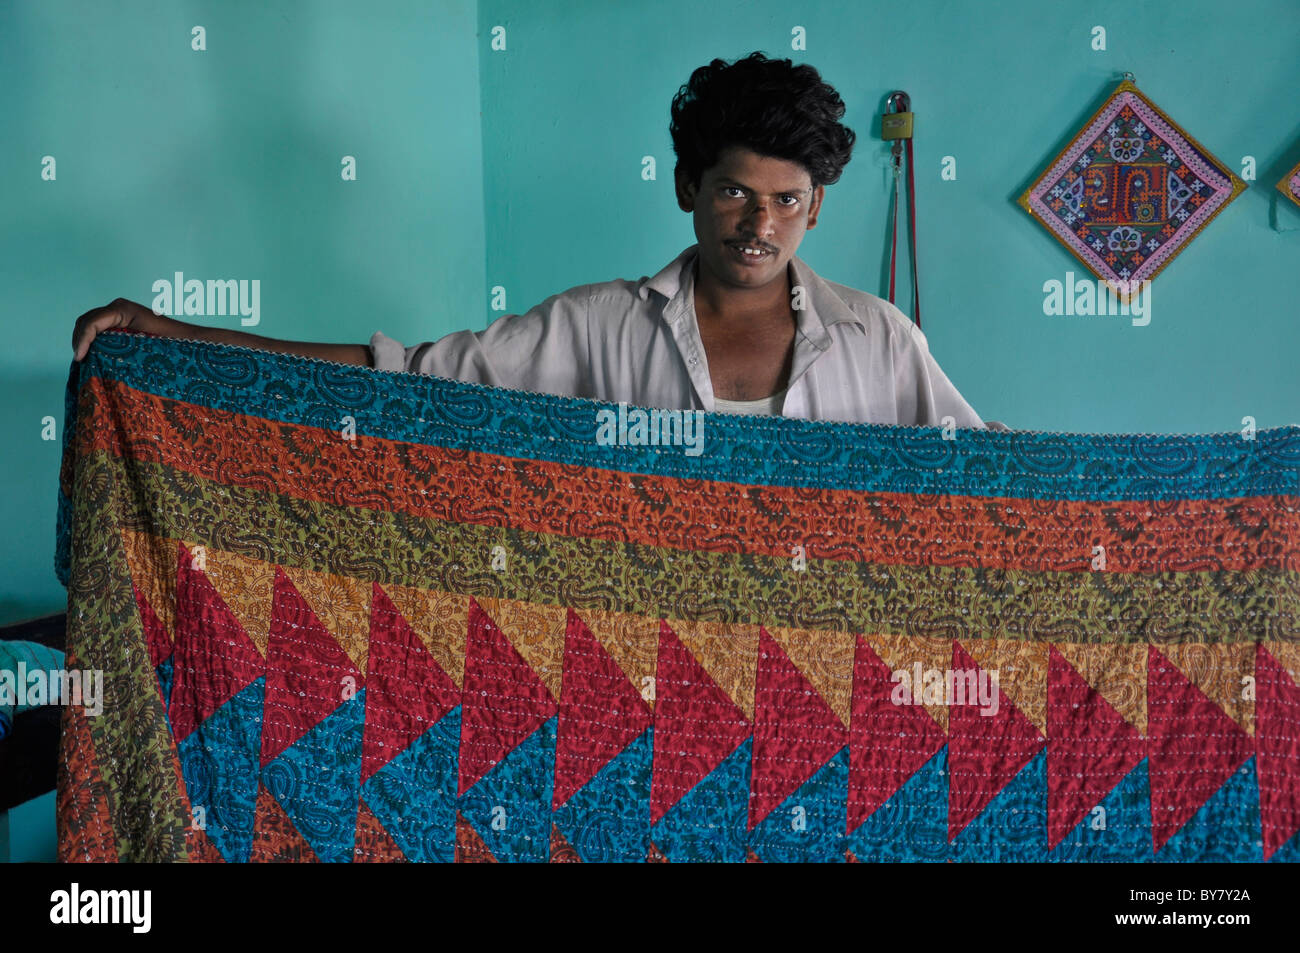 A man from Kutch, Gujarat showing his embroidery work on the bed sheet - Stock Image